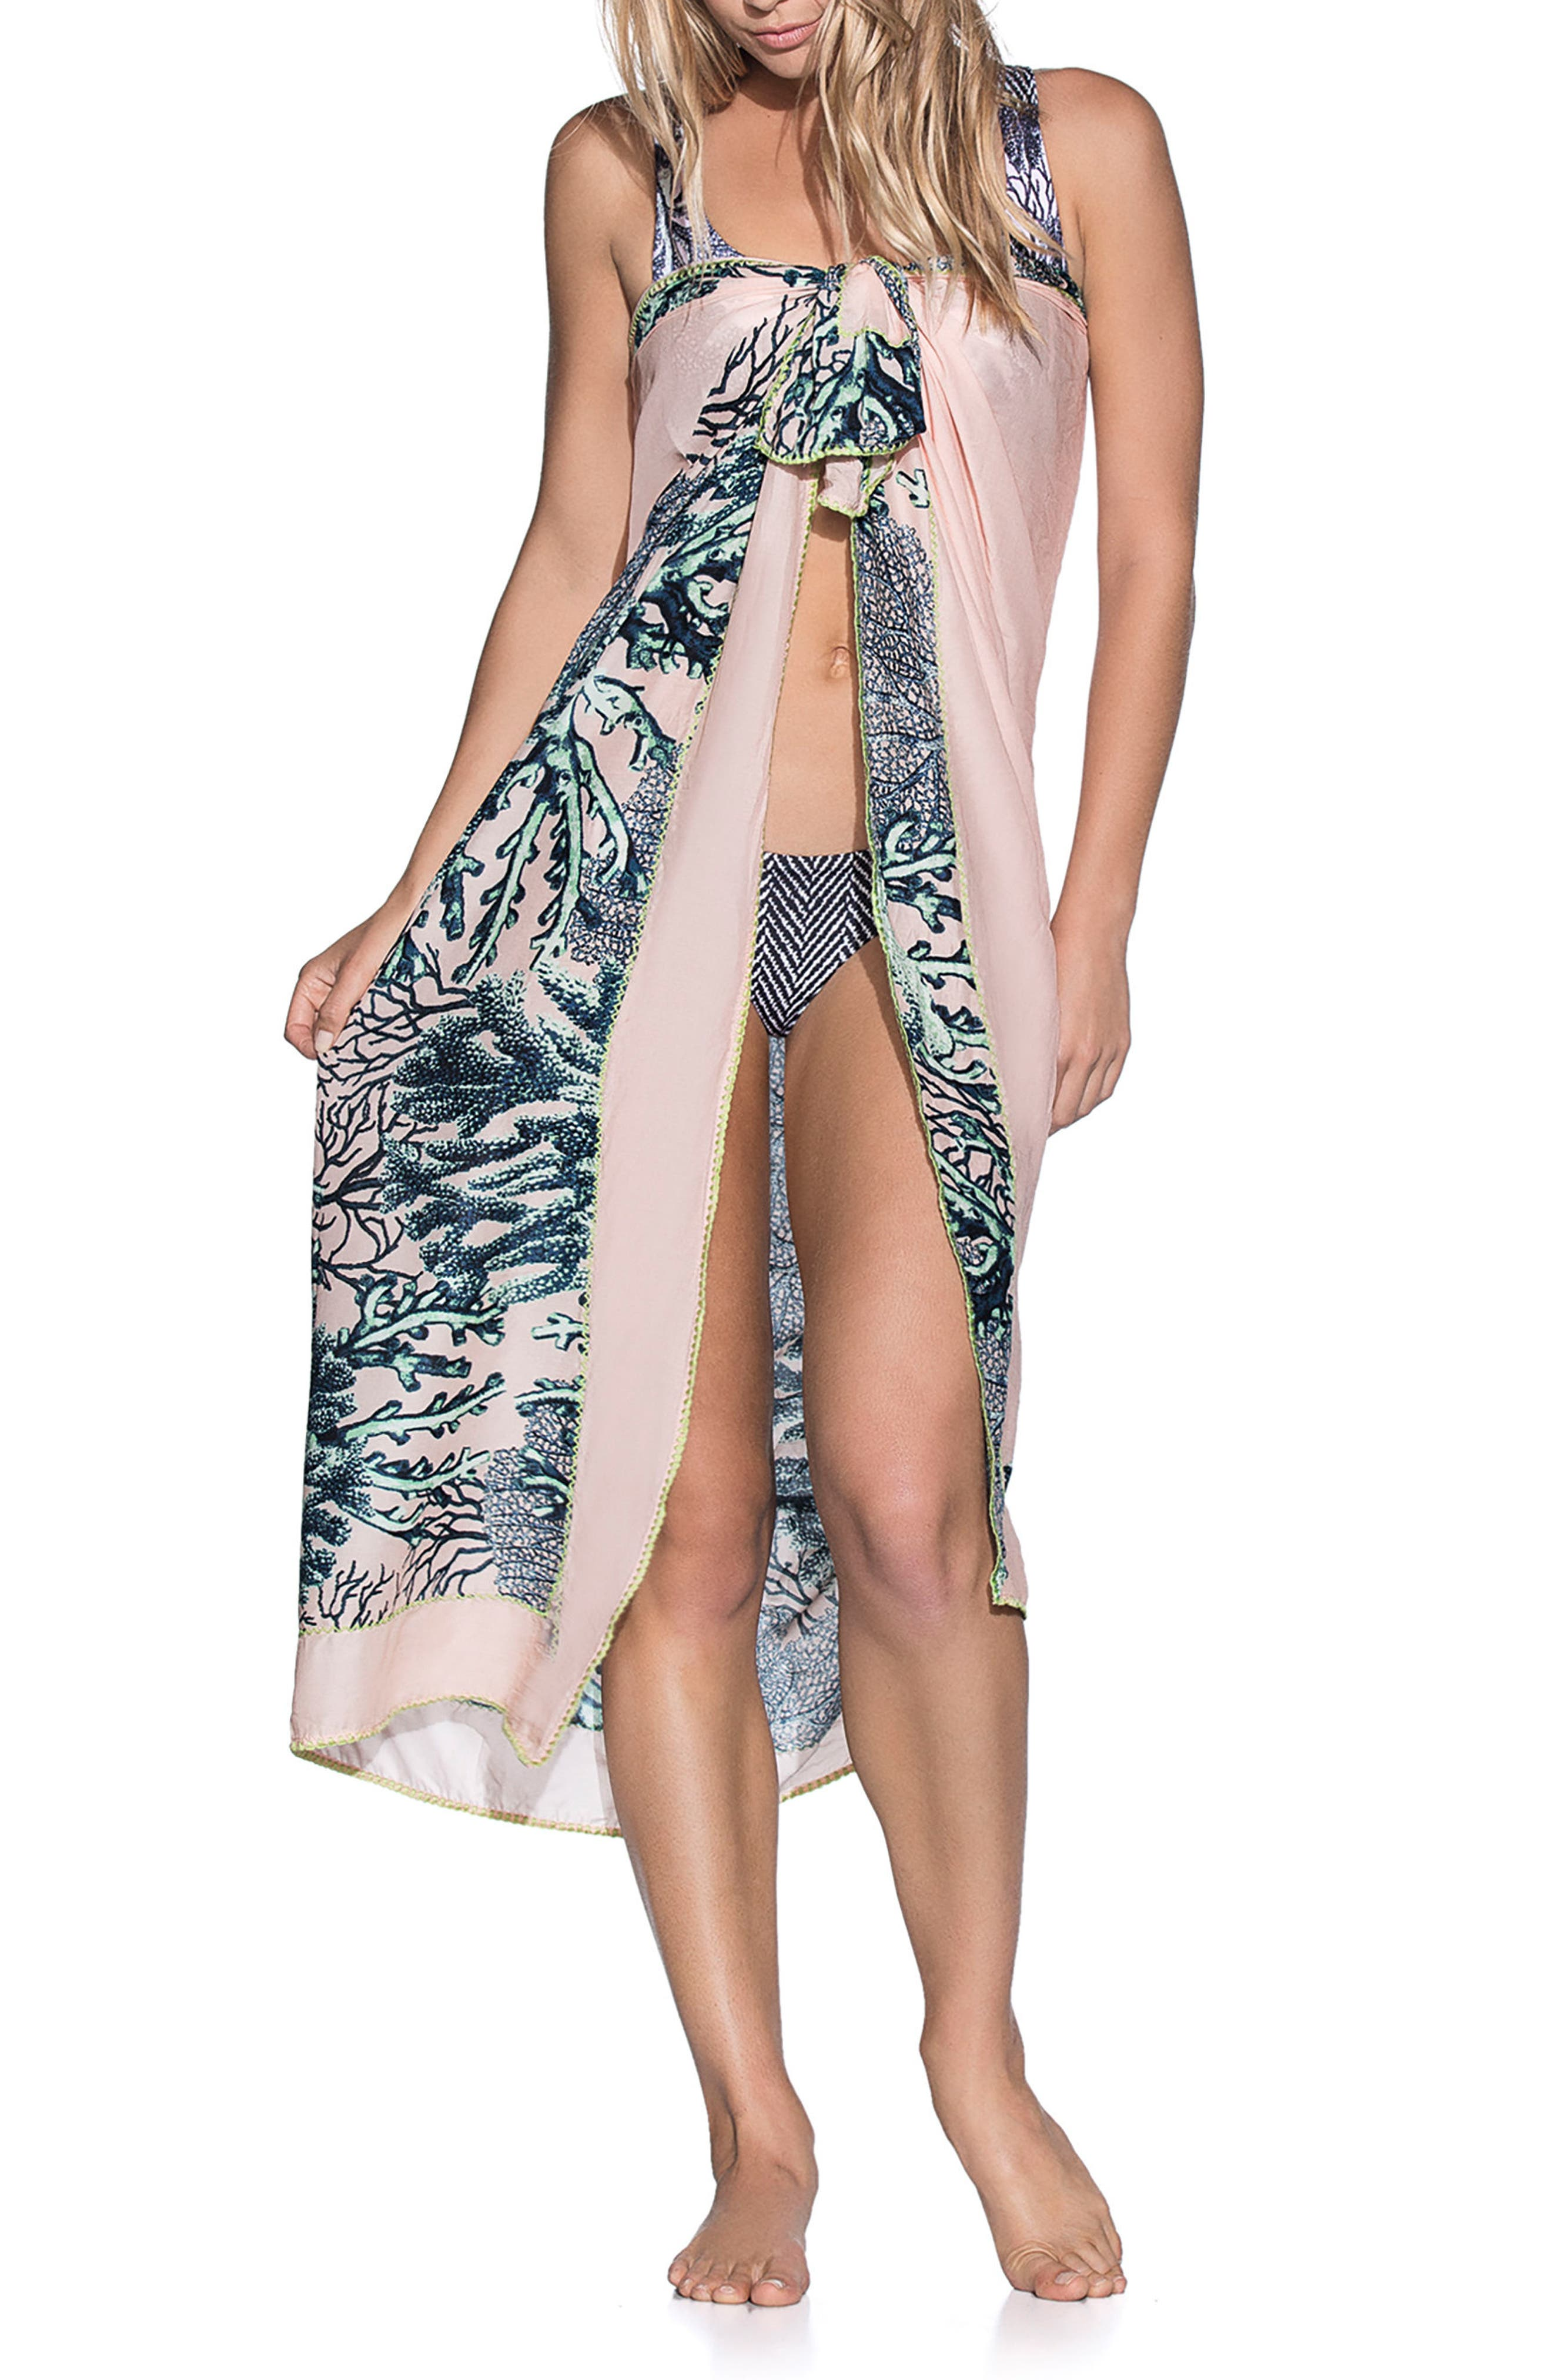 Bar Reef Pareo Cover-Up Wrap,                             Alternate thumbnail 2, color,